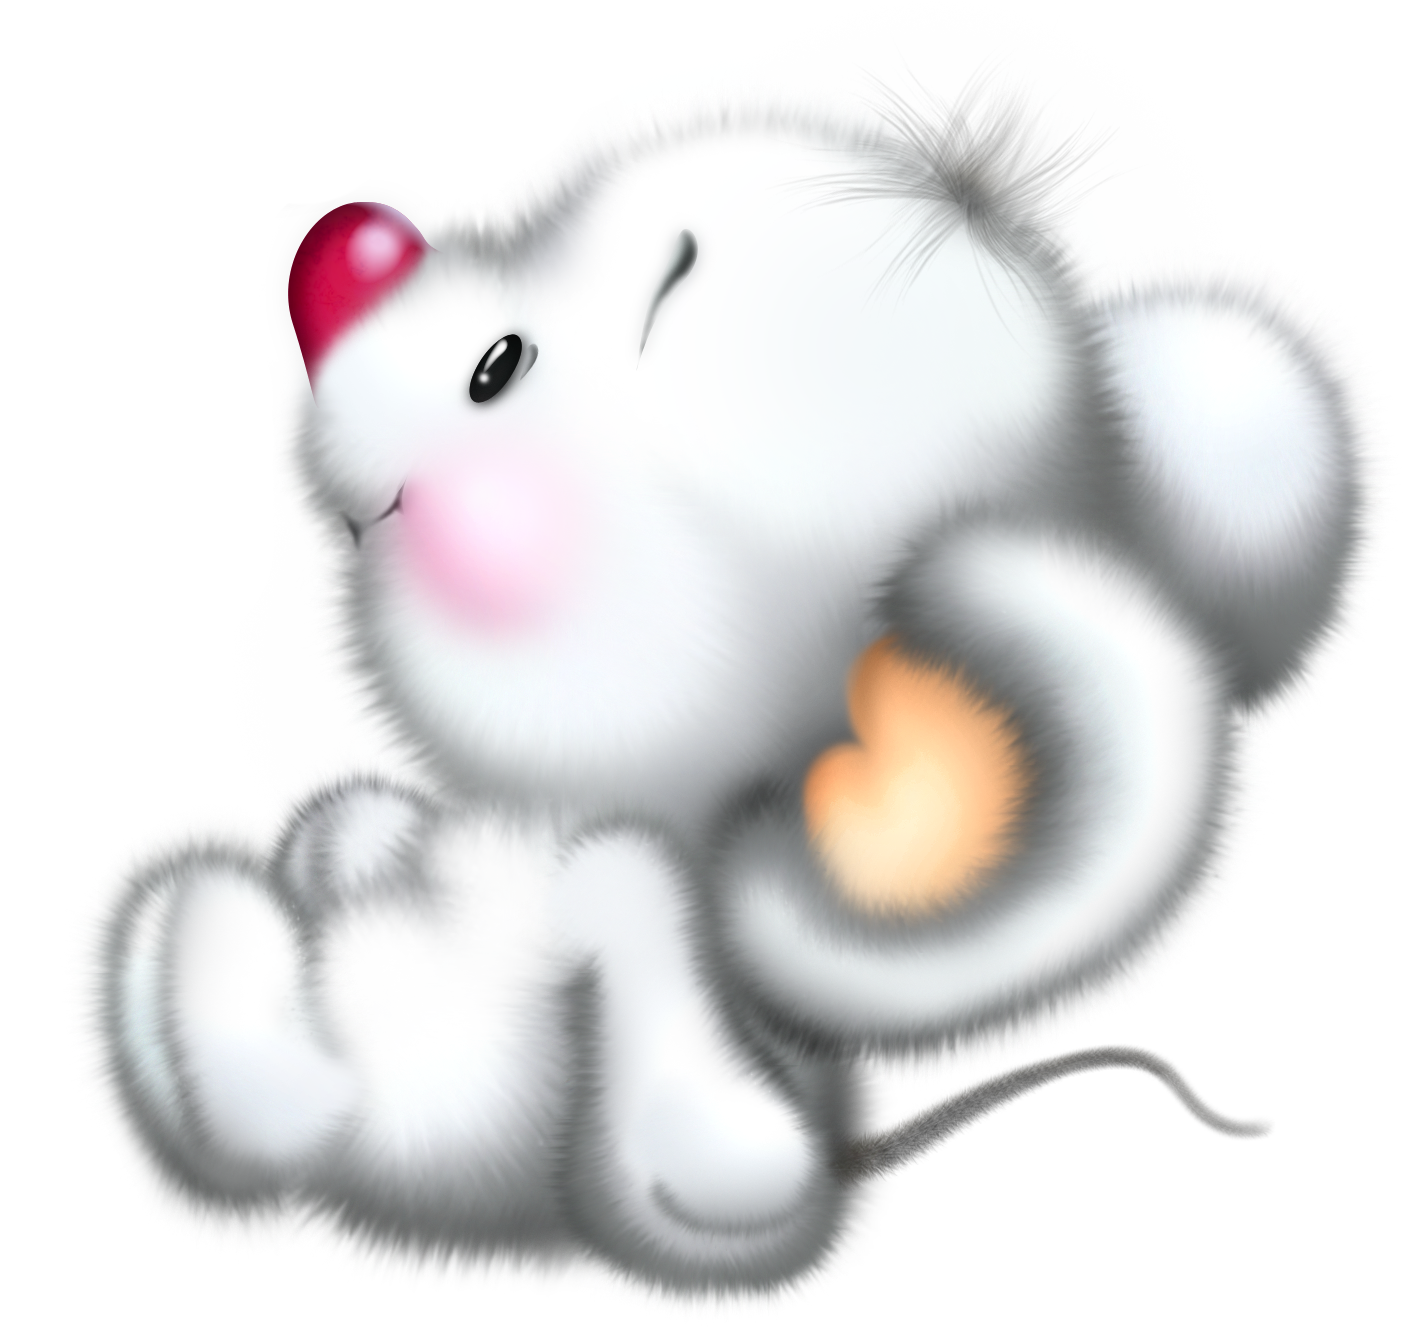 Clipart mouse illustration. Cute white cartoon free